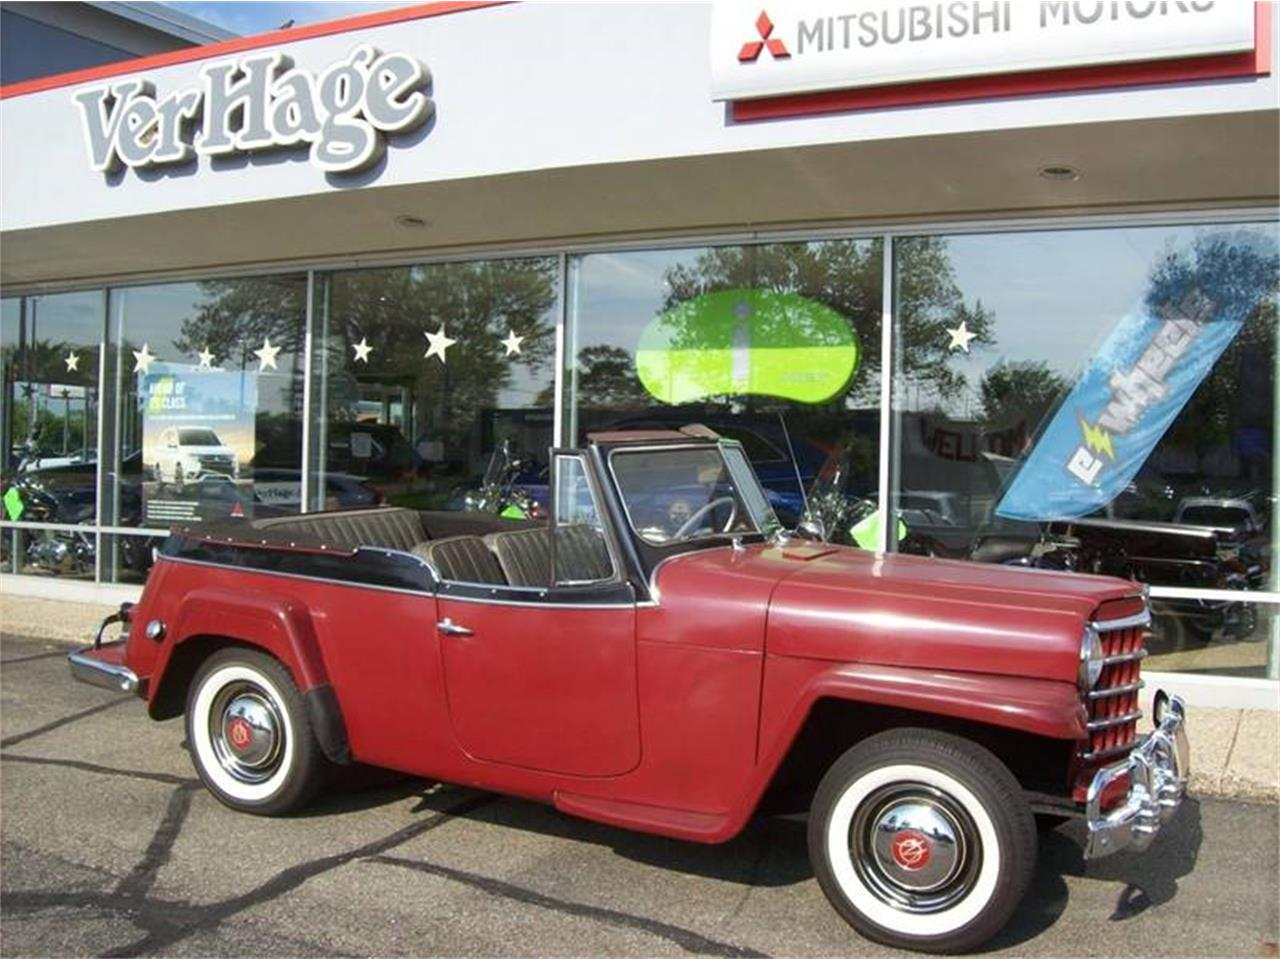 Large Picture of '51 Jeepster - $20,900.00 Offered by Verhage Mitsubishi - NI8U